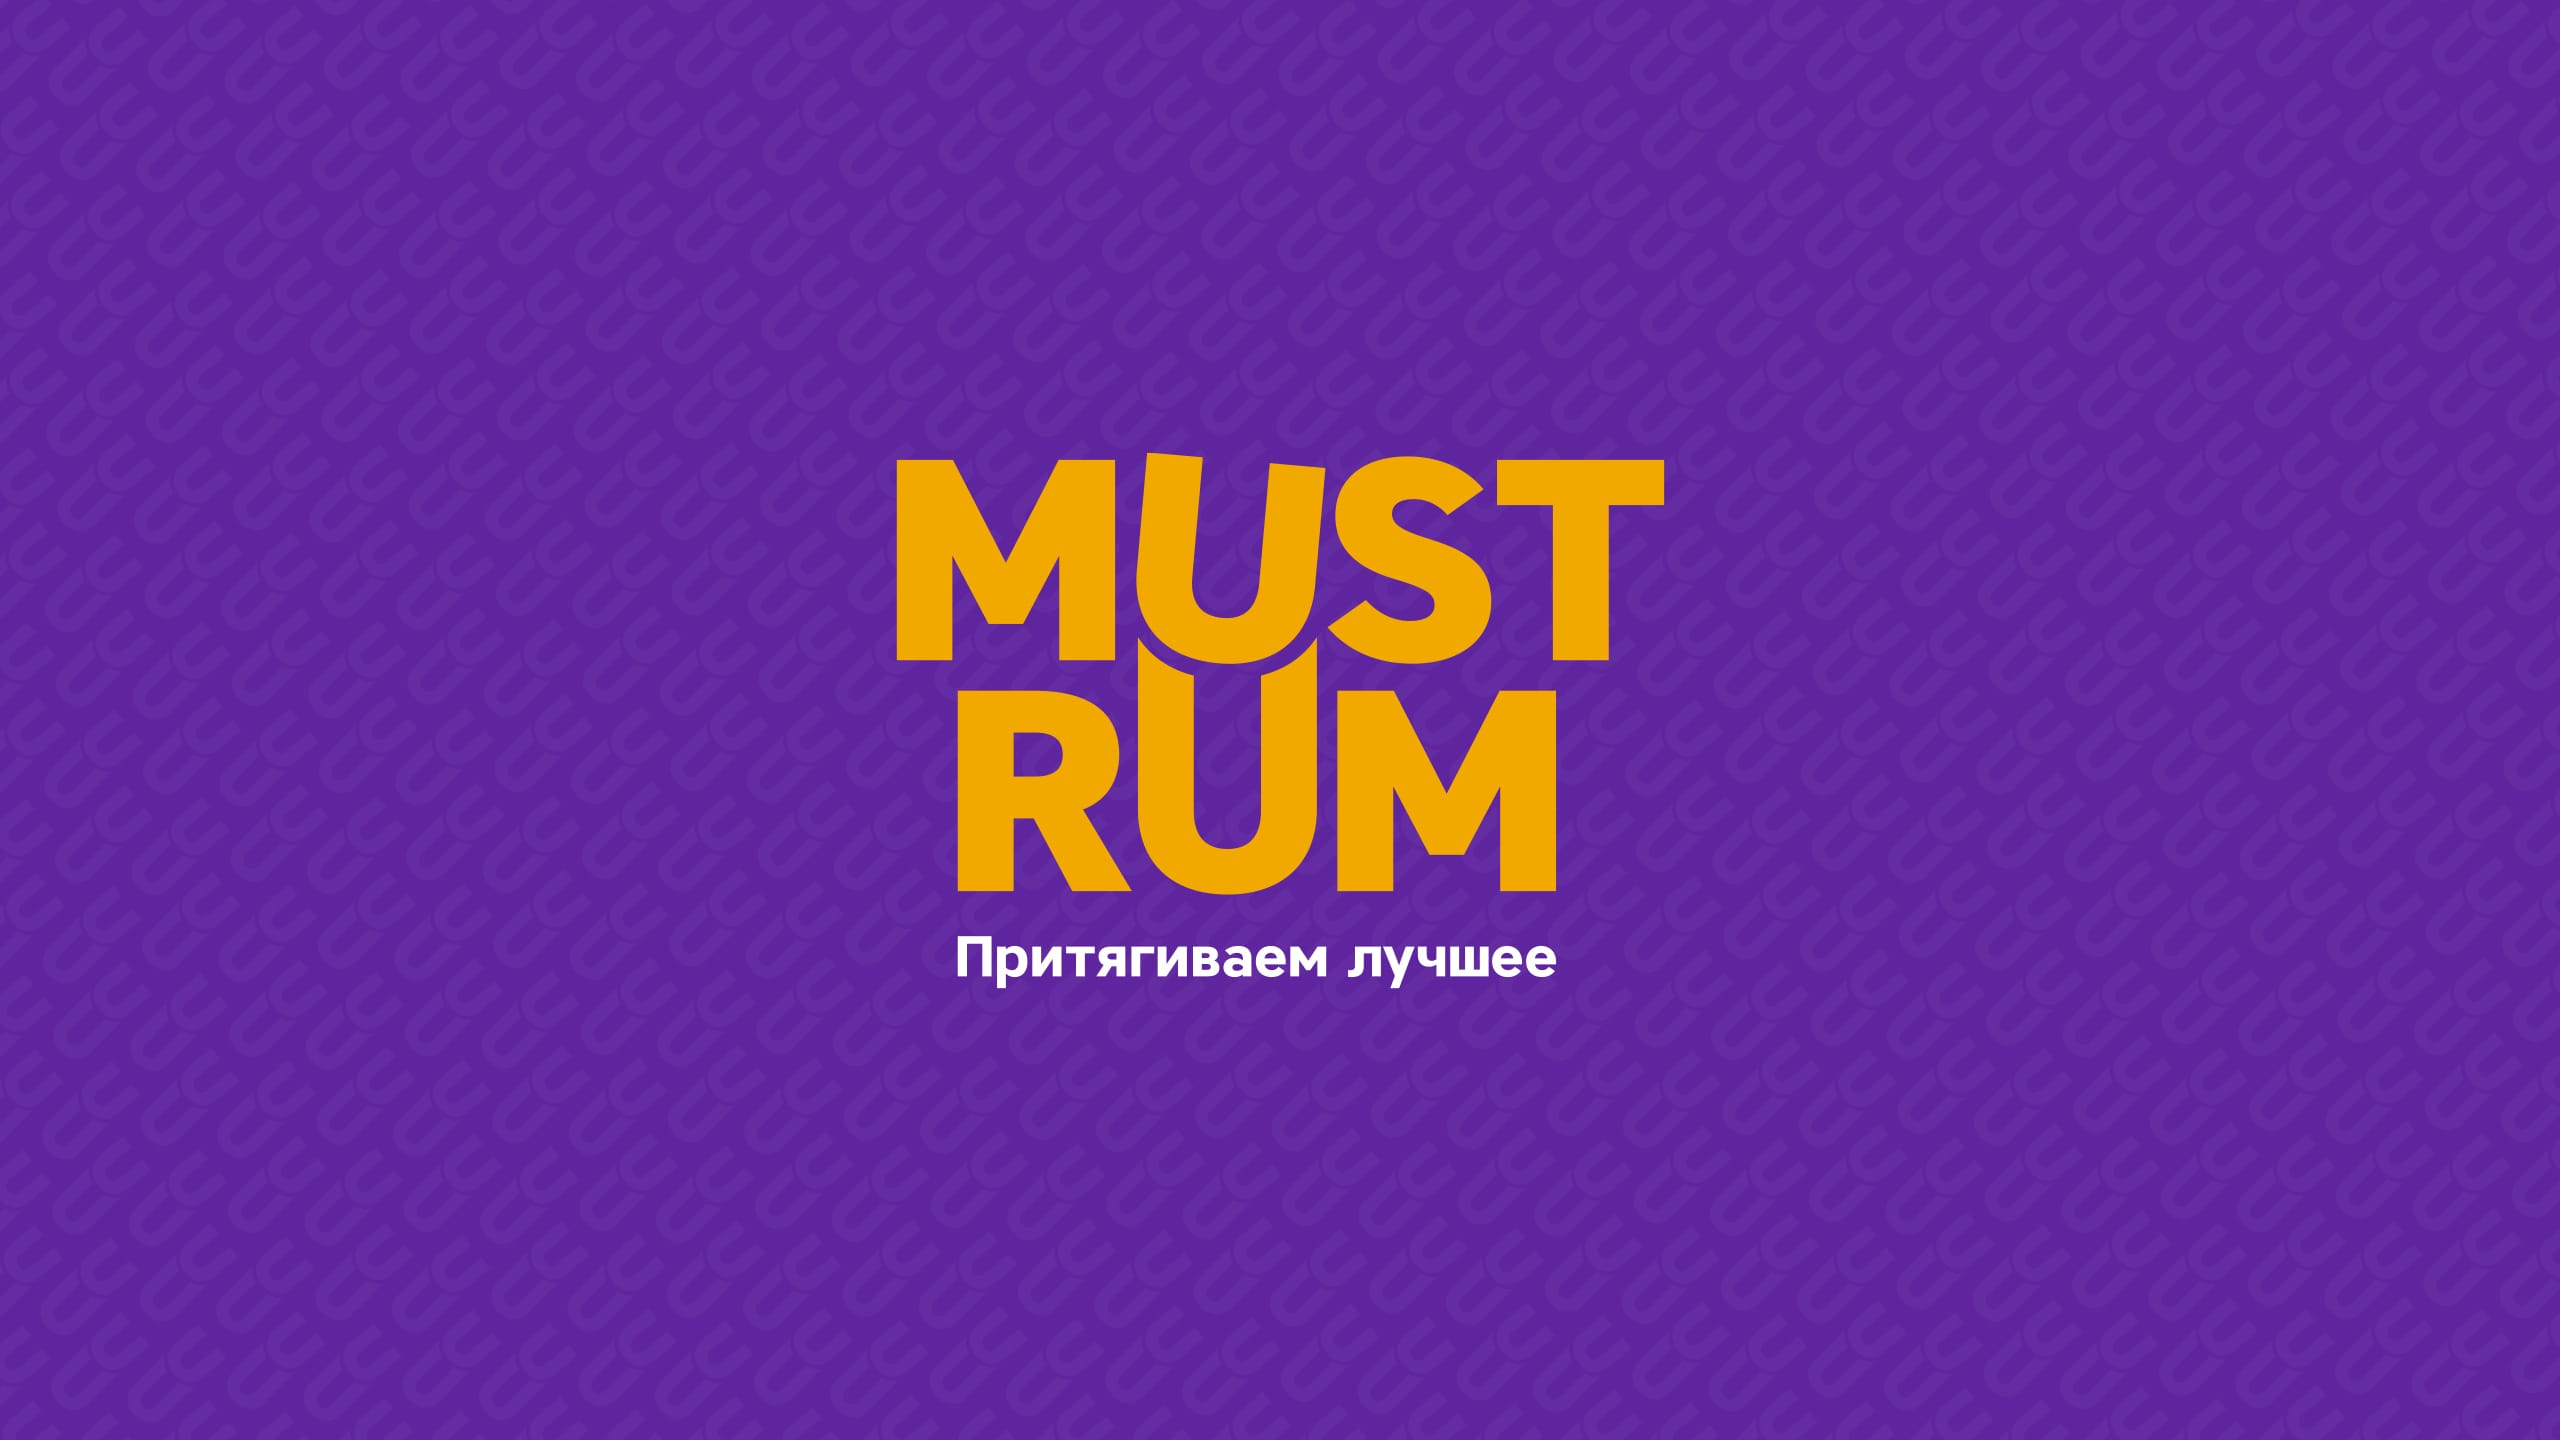 Mustrum logotype